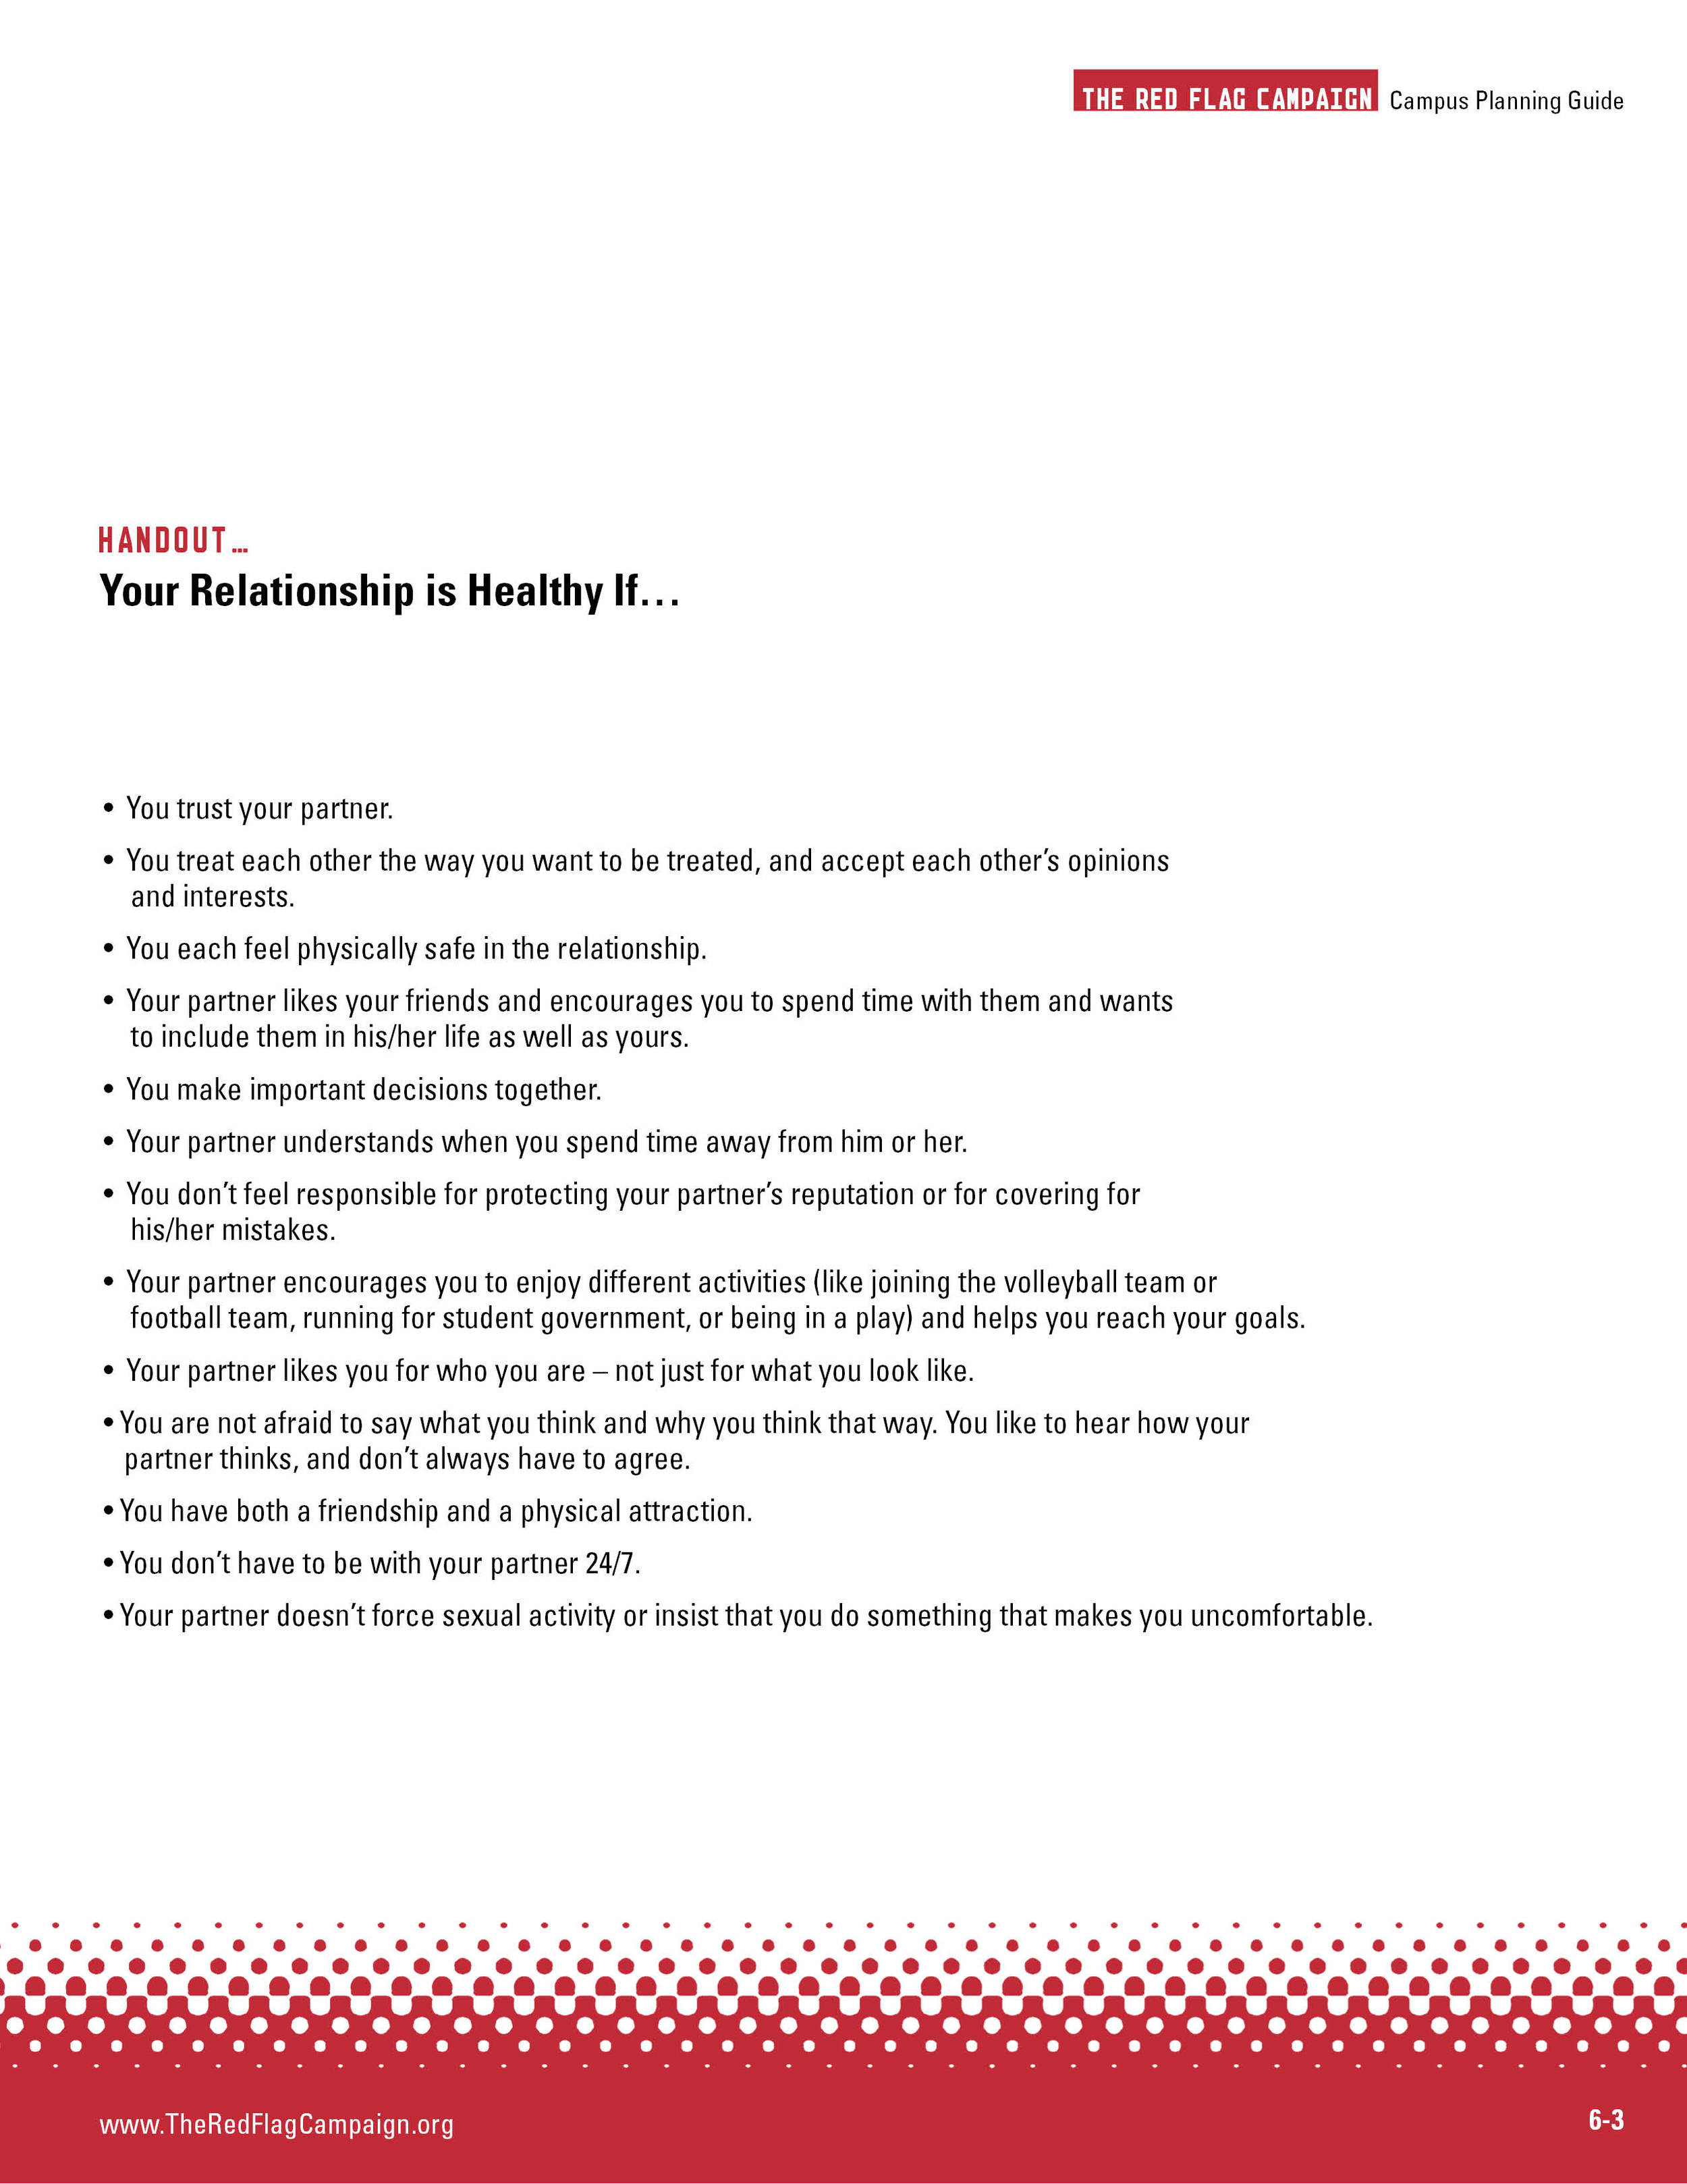 Your Relationship is Healthy If...